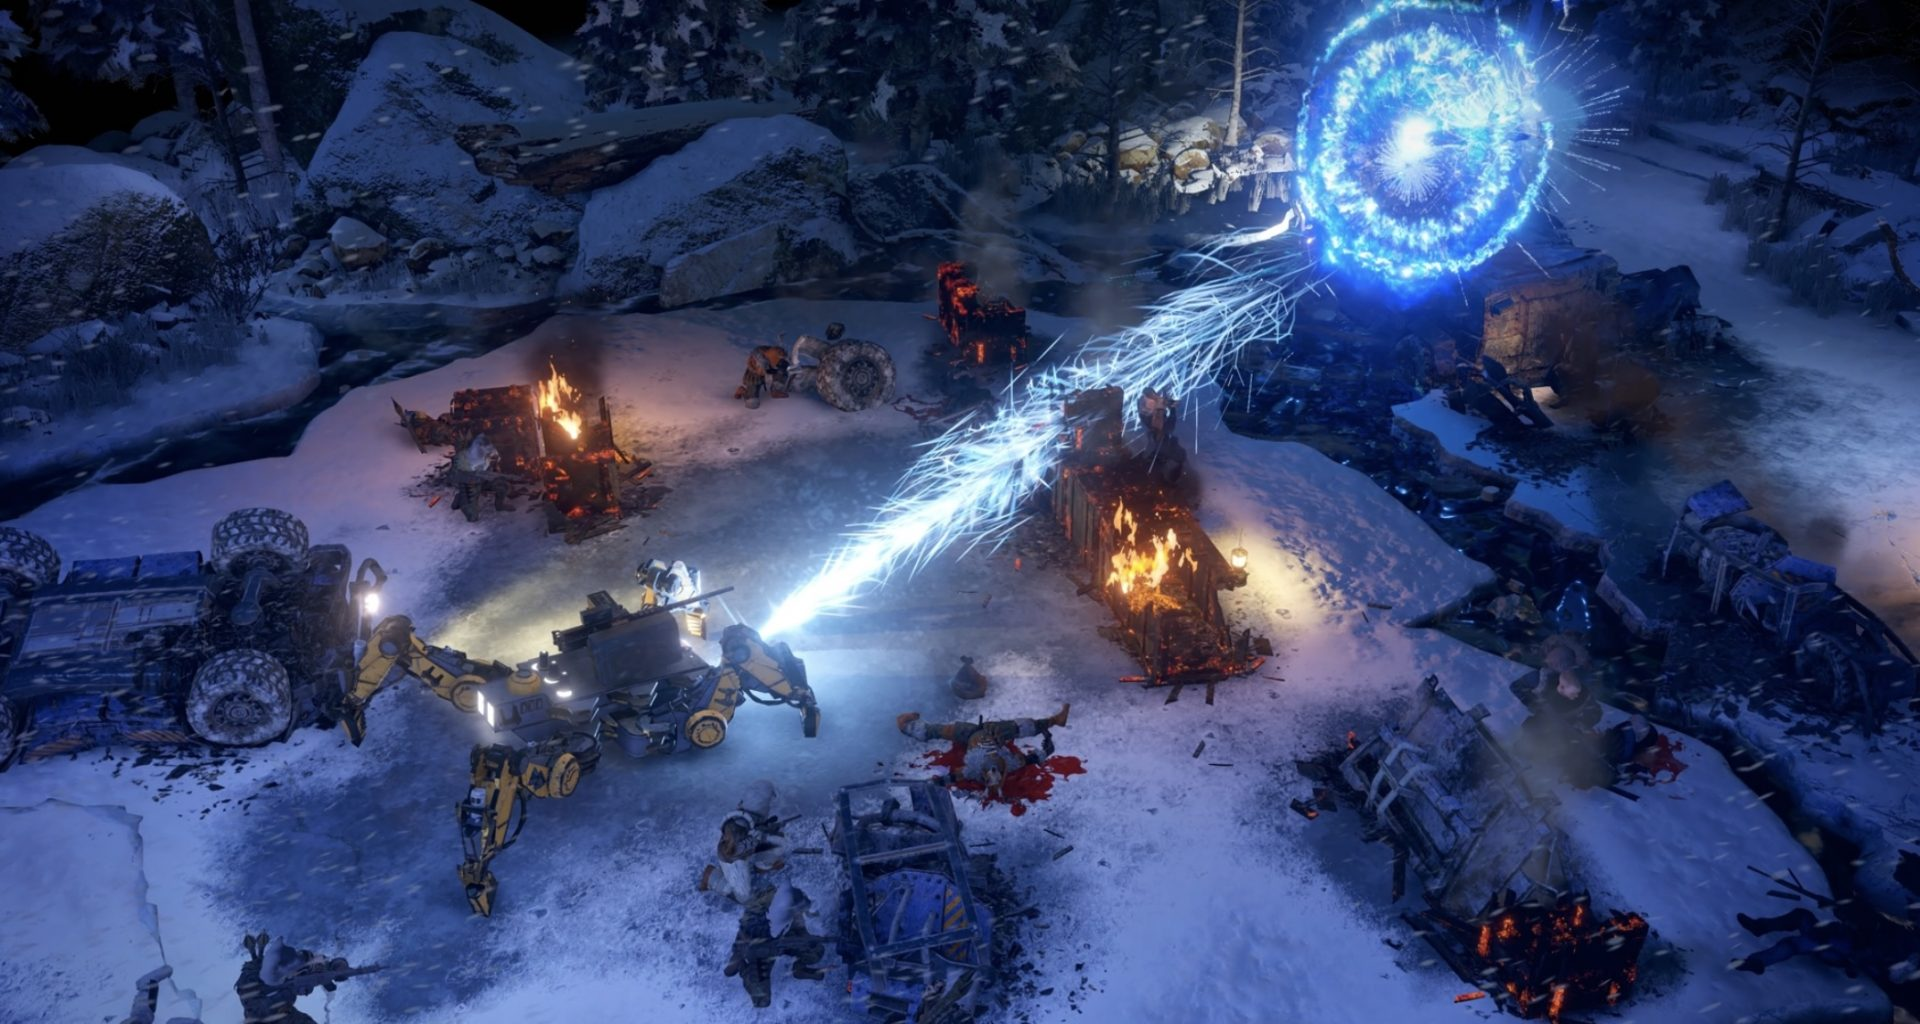 Wasteland 3 Update 1.16 Patch Notes